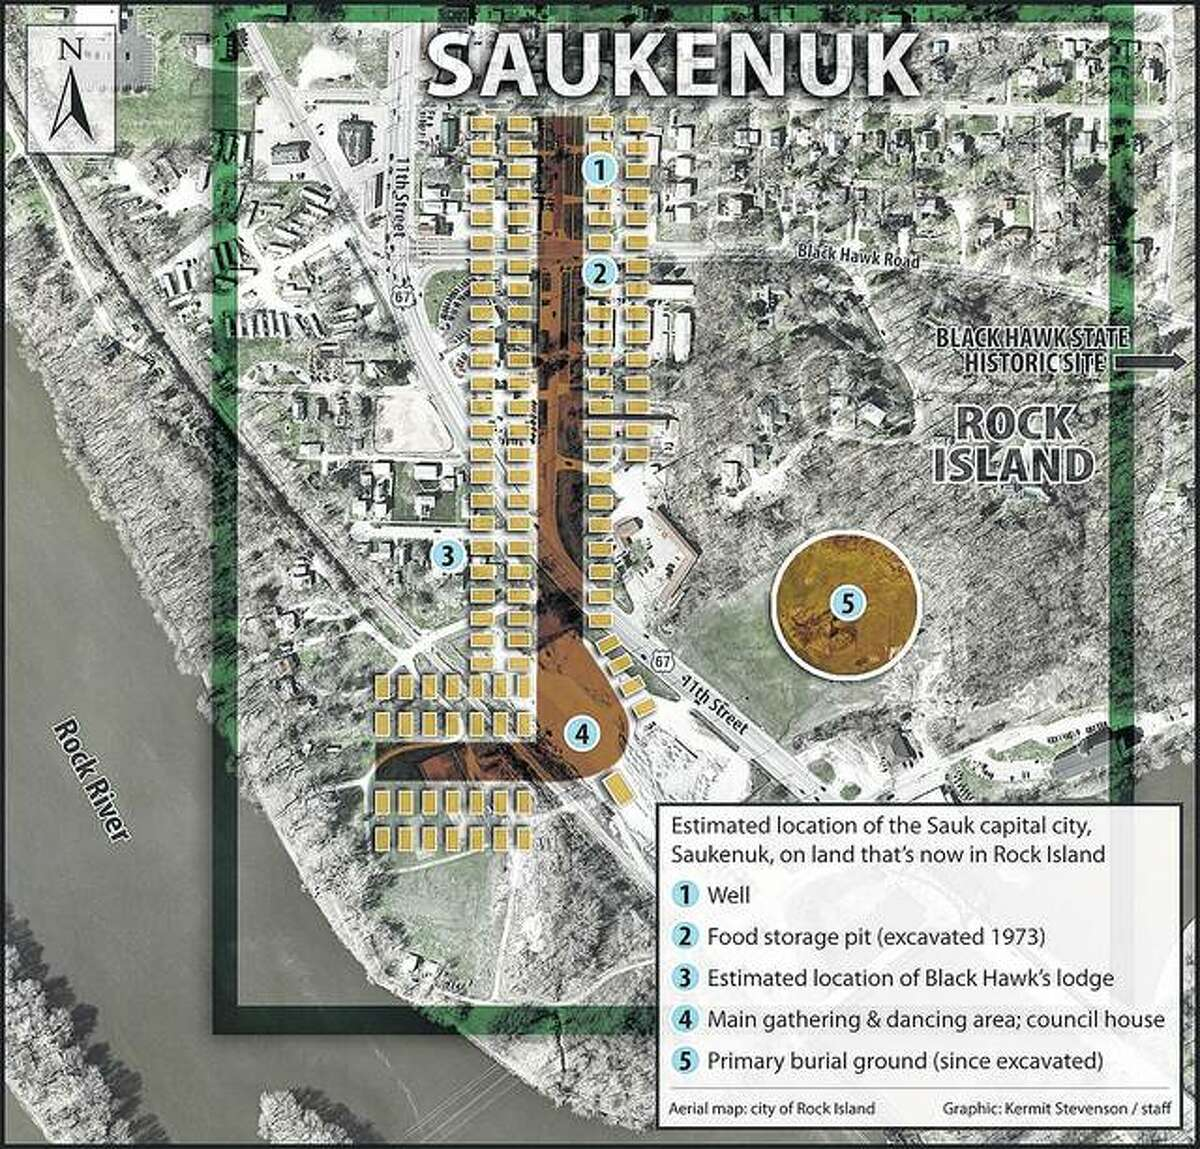 An overlay map of south Rock Island shows the Sauk village of Saukenuk covered a good portion of a residential area of present-day Rock Island.